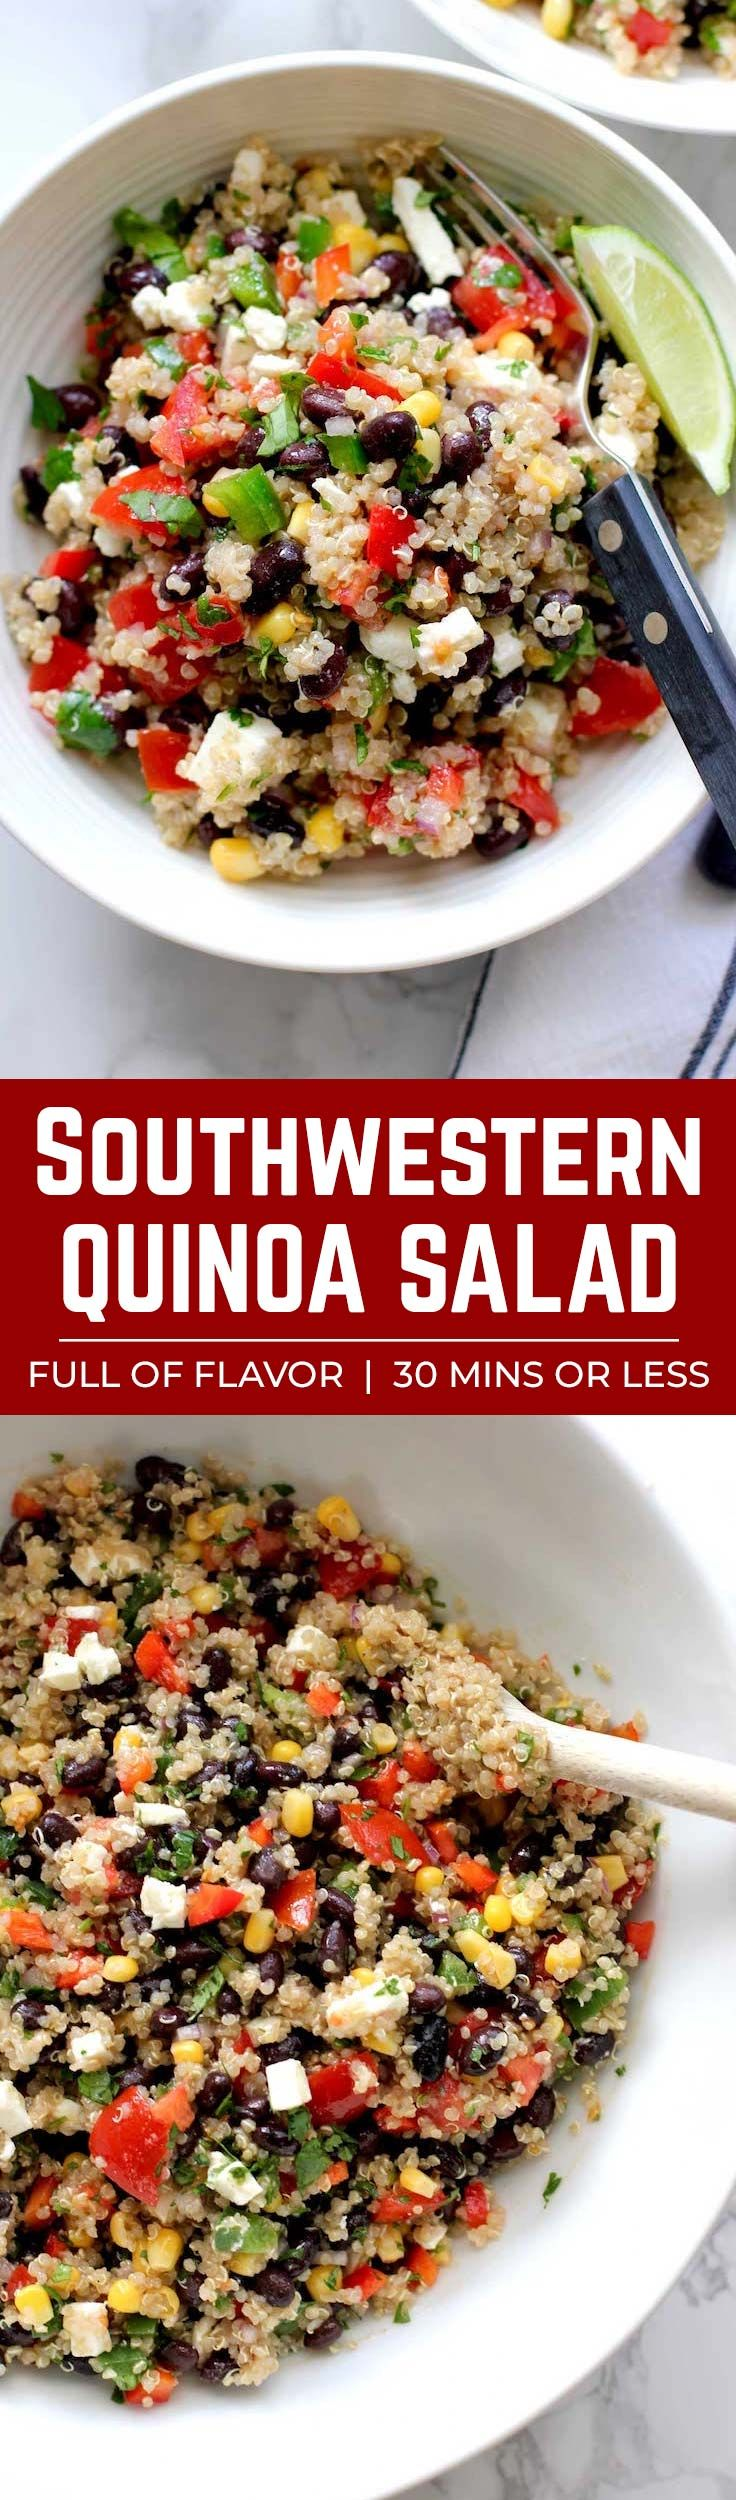 This southwestern quinoa salad is packed with fresh, colorful, crunchy vegetables, black beans, quinoa and tossed in a zesty lime cumin dressing. It's a healthy, delicious salad that everyone will love. #Quinoasalad #vegetarian #healthysalad